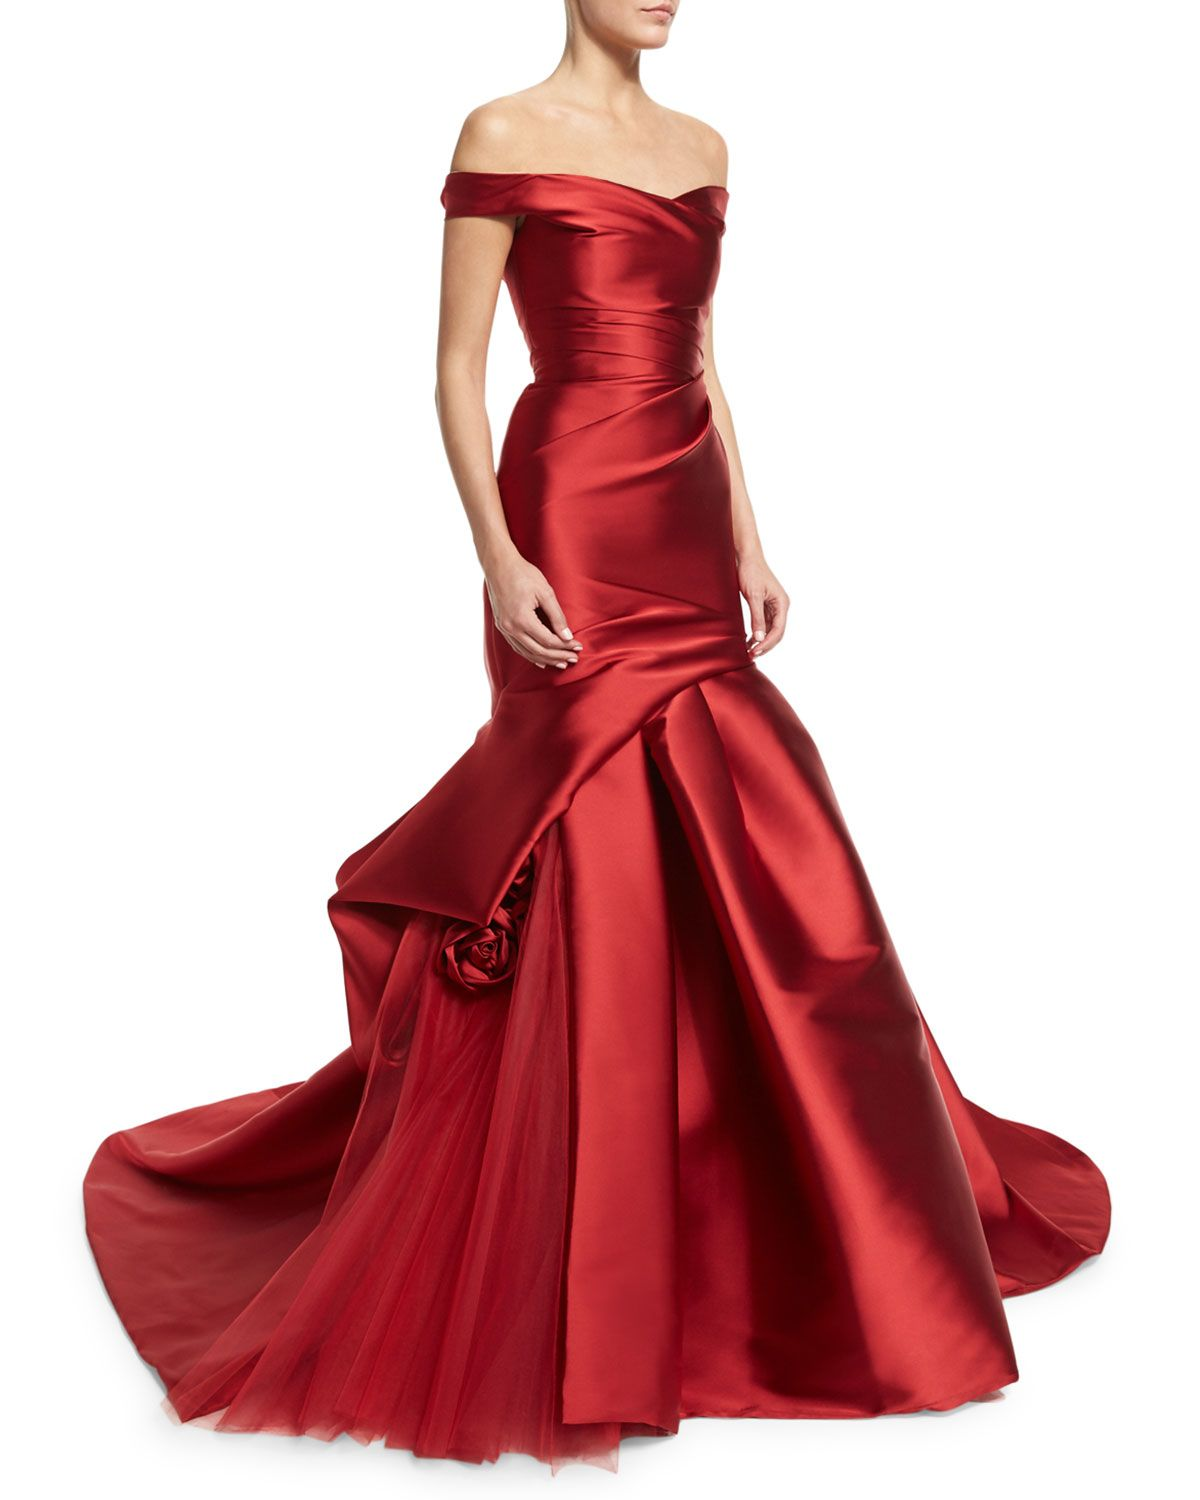 Monique lhuillier offtheshoulder ruched mikado gown reminds me of